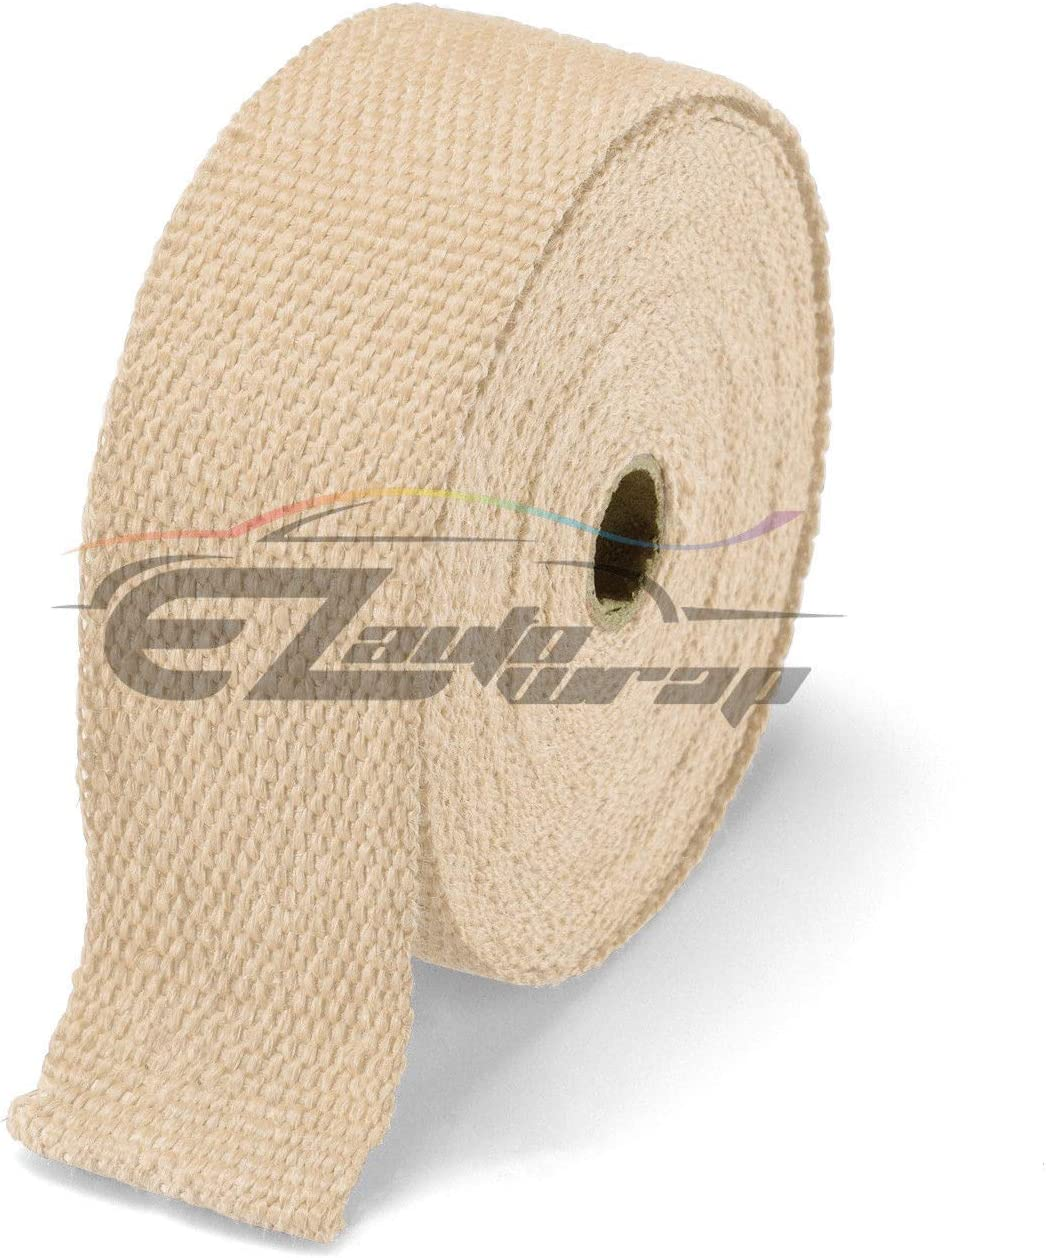 EZAUTOWRAP Black Exhaust Pipe Insulation Thermal Heat Wrap 2 x 50 Motorcycle Header Protection Fiberglass Heat Shield 6X Stainless Ties